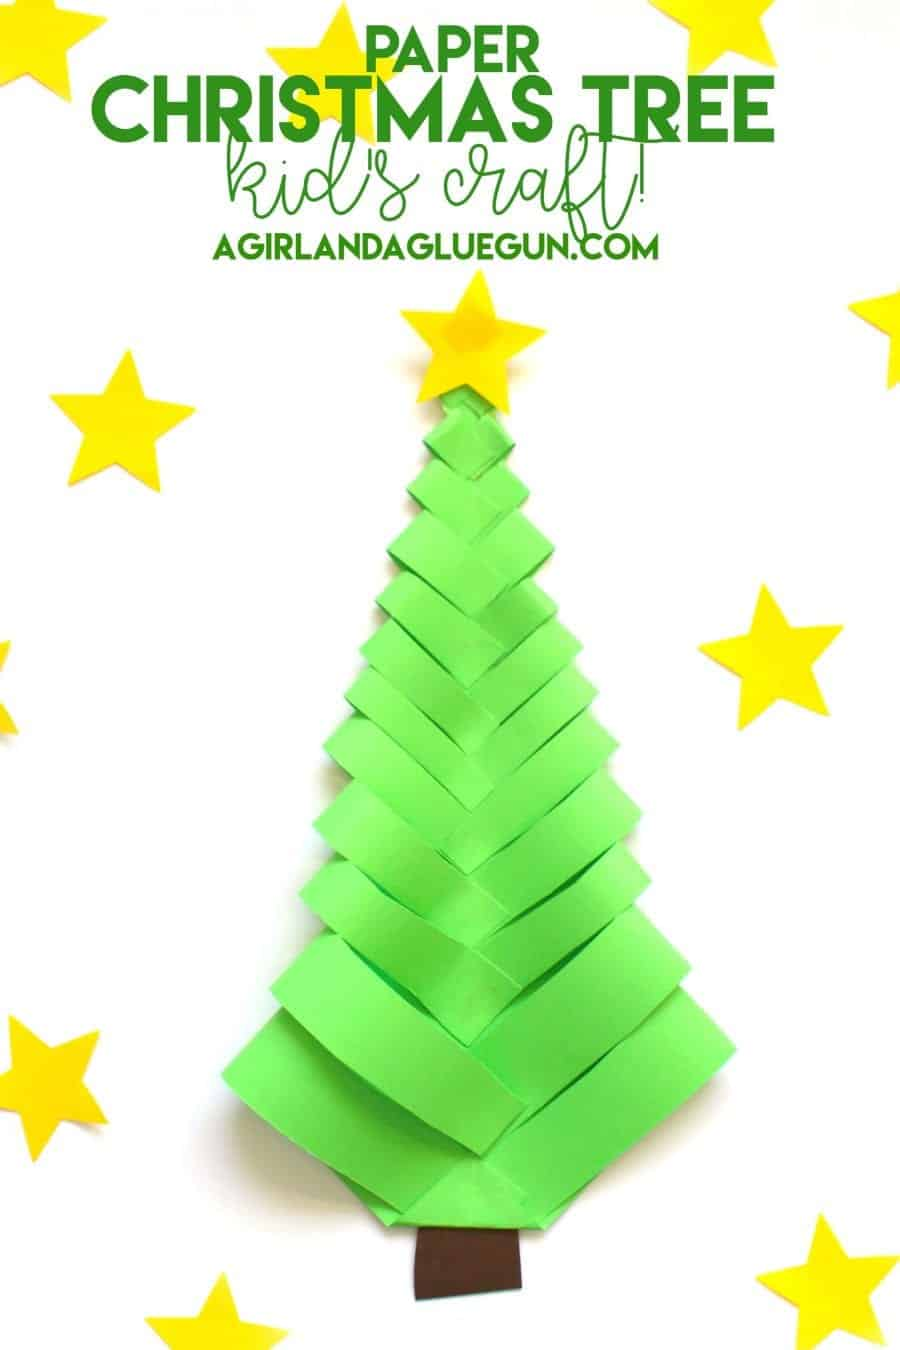 Paper Christmas Tree-Kid\'s craft! - A girl and a glue gun